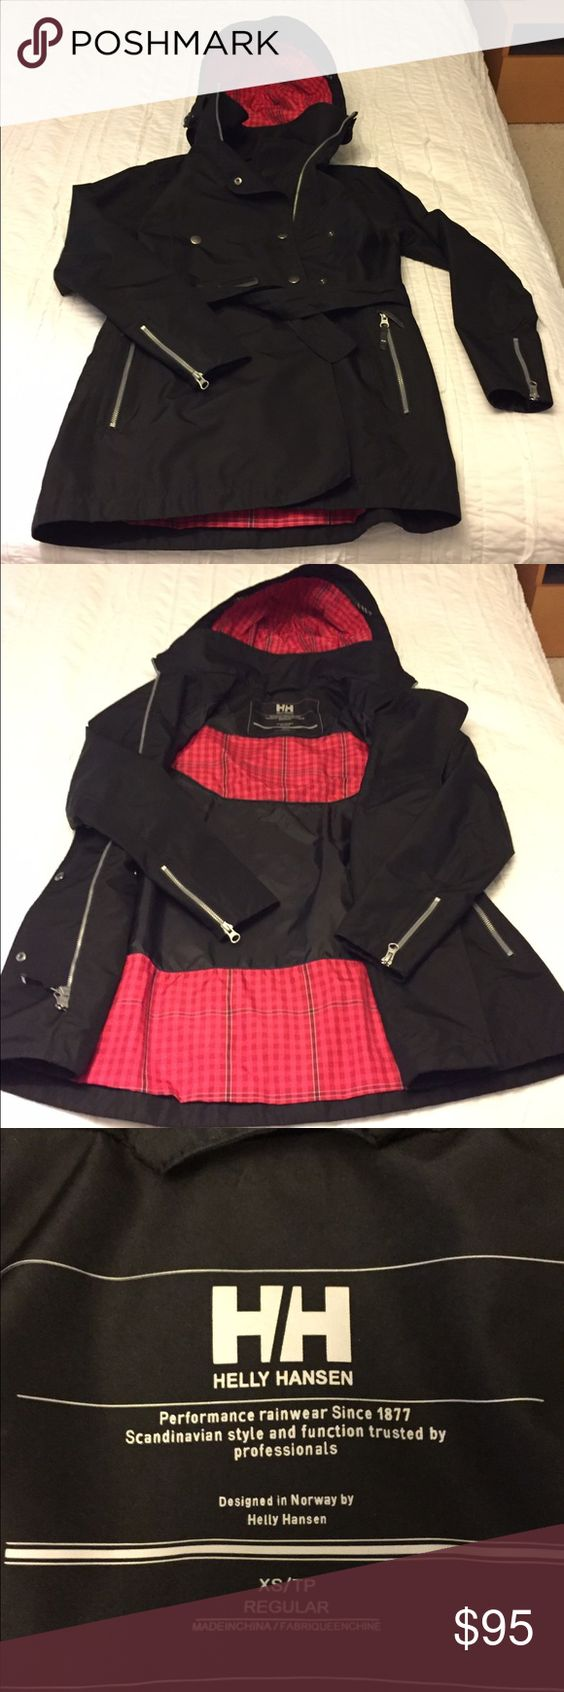 Helly Hansen Rain Jacket Helly Hansen trench style rain jacket. Belted. Hooded. Zippers at pockets and sleeves. Waterproof. Black with pink and red plaid details. Excellent condition, no flaws. Ordered from Nordstrom. Helly Hansen Jackets & Coats Trench Coats